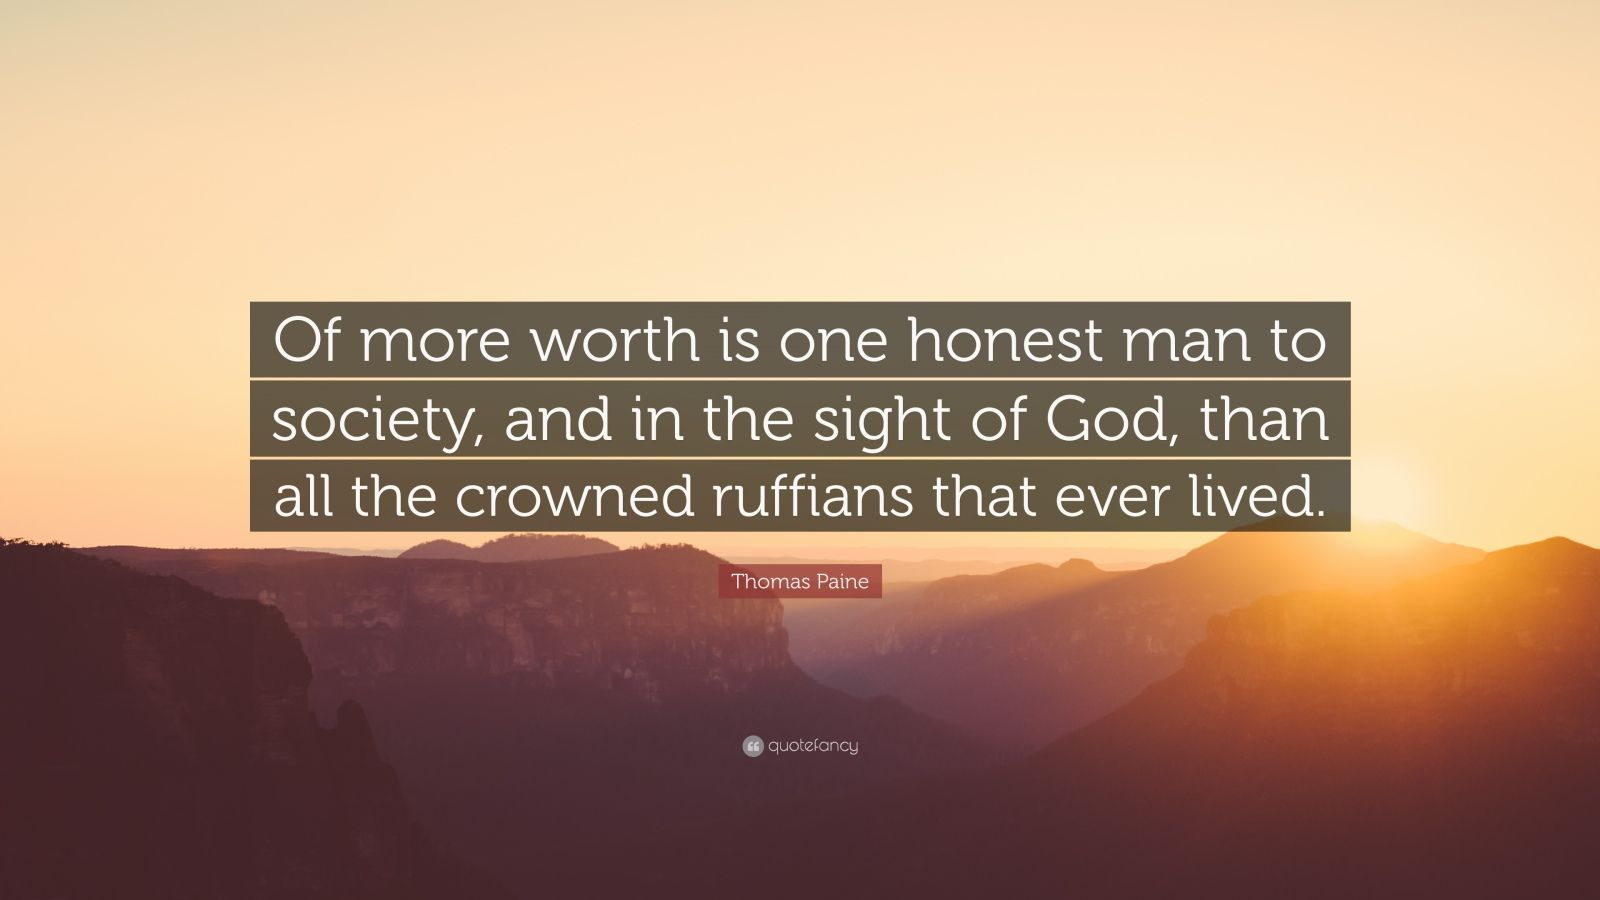 """Thomas Paine Quote: """"Of more worth is one honest man to society, and in the sight of God, than all the crowned ruffians that ever lived."""""""